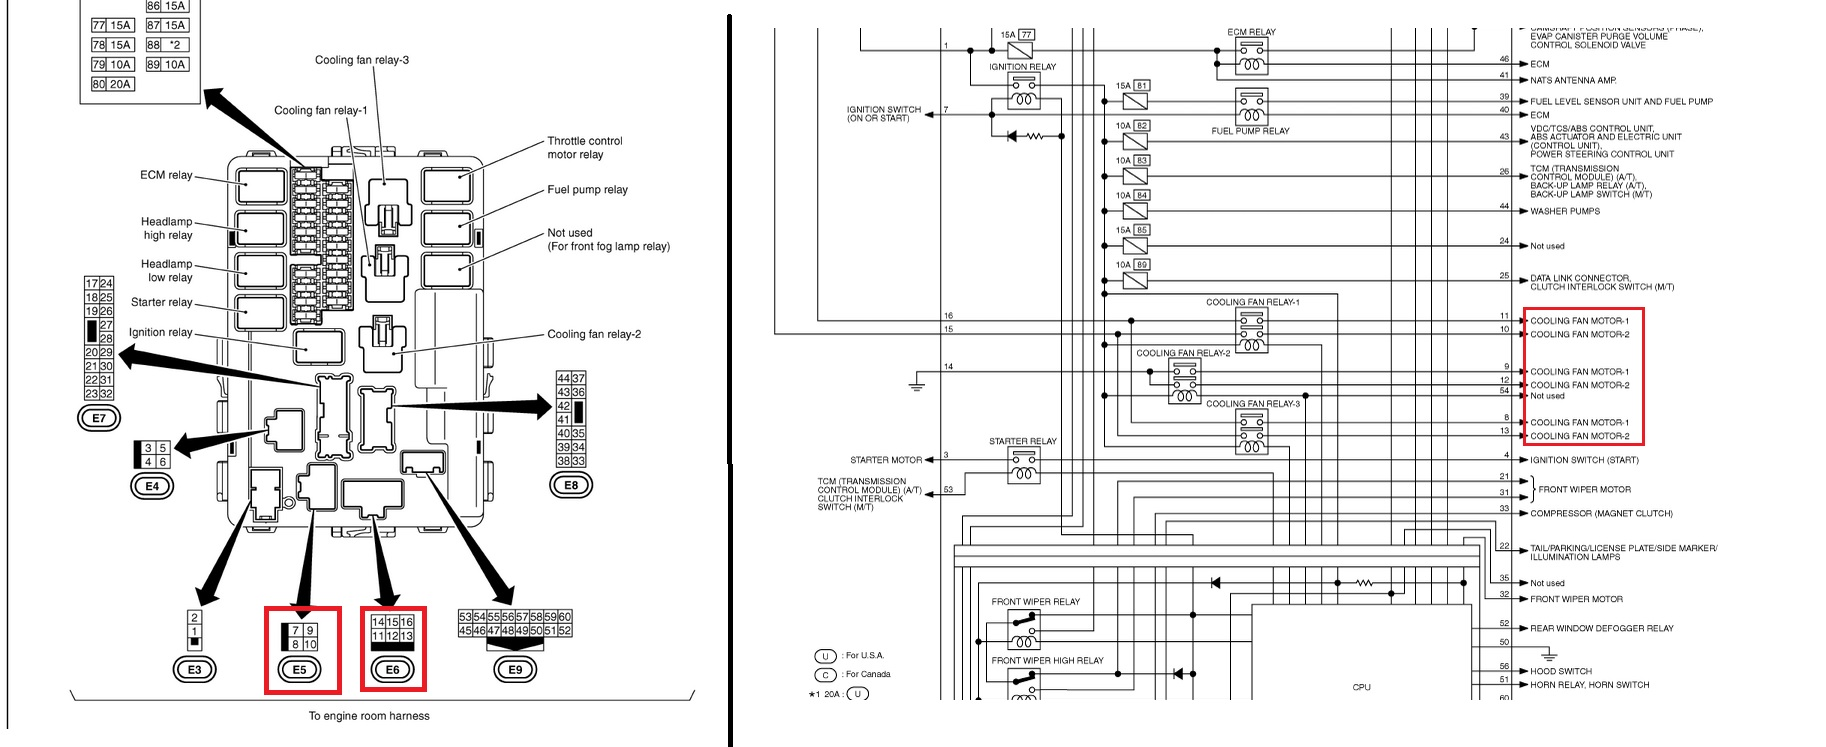 Wiring+Diagram+-+350Z+IPDM Radio Wiring Diagram Nissan Z on cooling fan wiring, manual transmission parts, relay fuse box, headlight wiring, front engine parts, driver door handle,